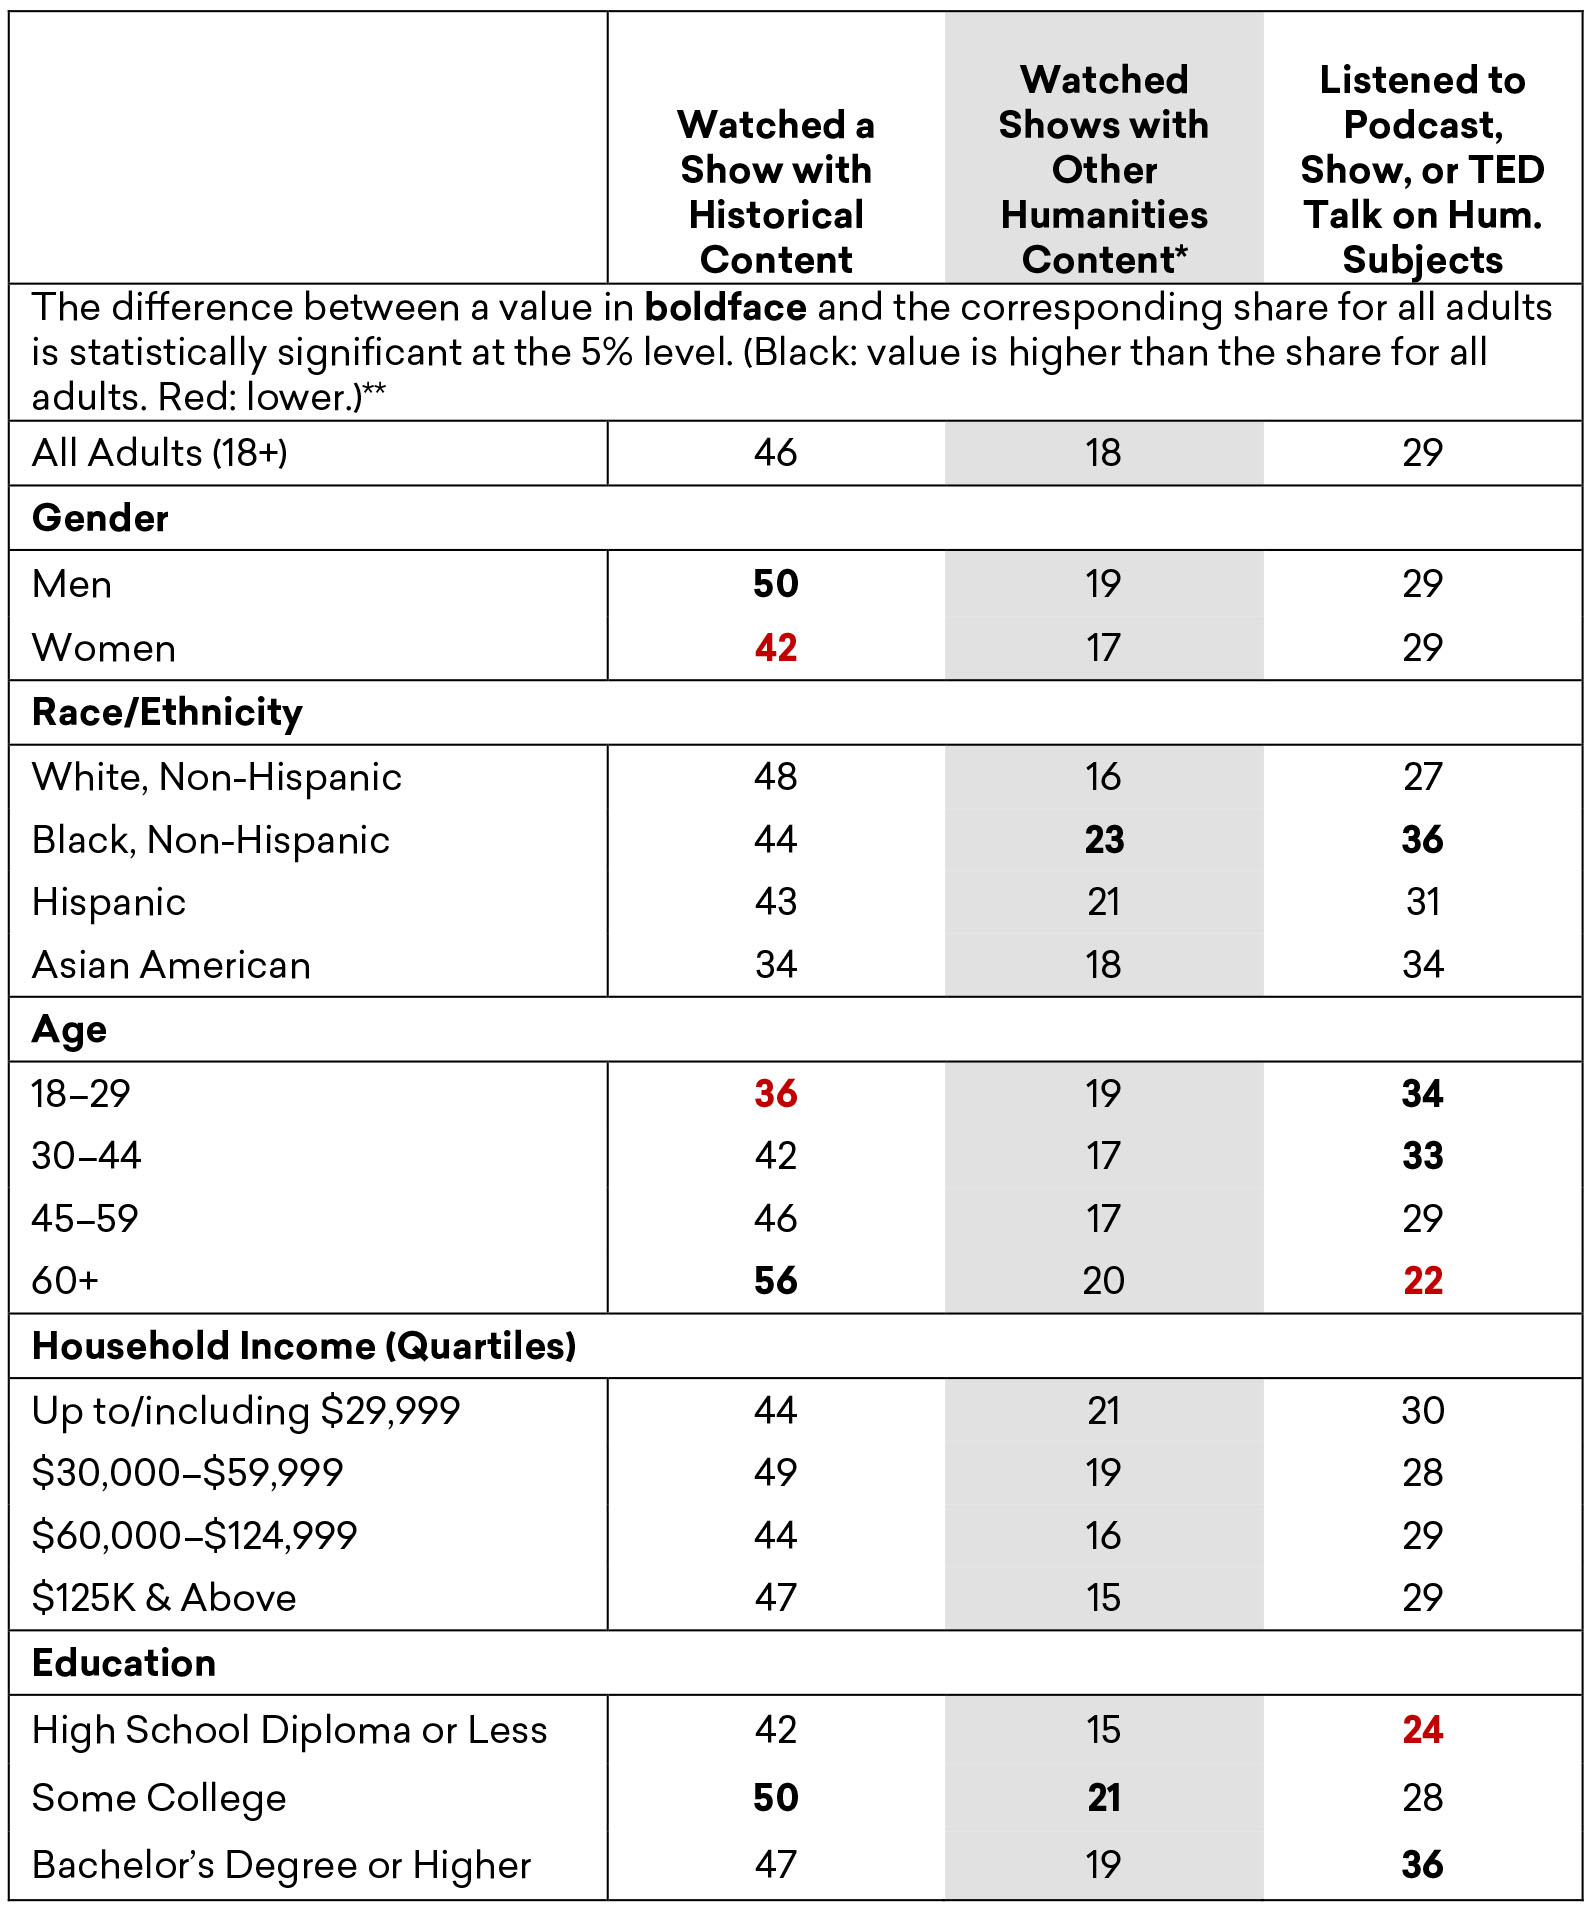 Estimated Share of Adults Who Watched or Listened to Humanities Content Often/Very Often in the Previous 12 Months, by Demographic Group, Fall 2019